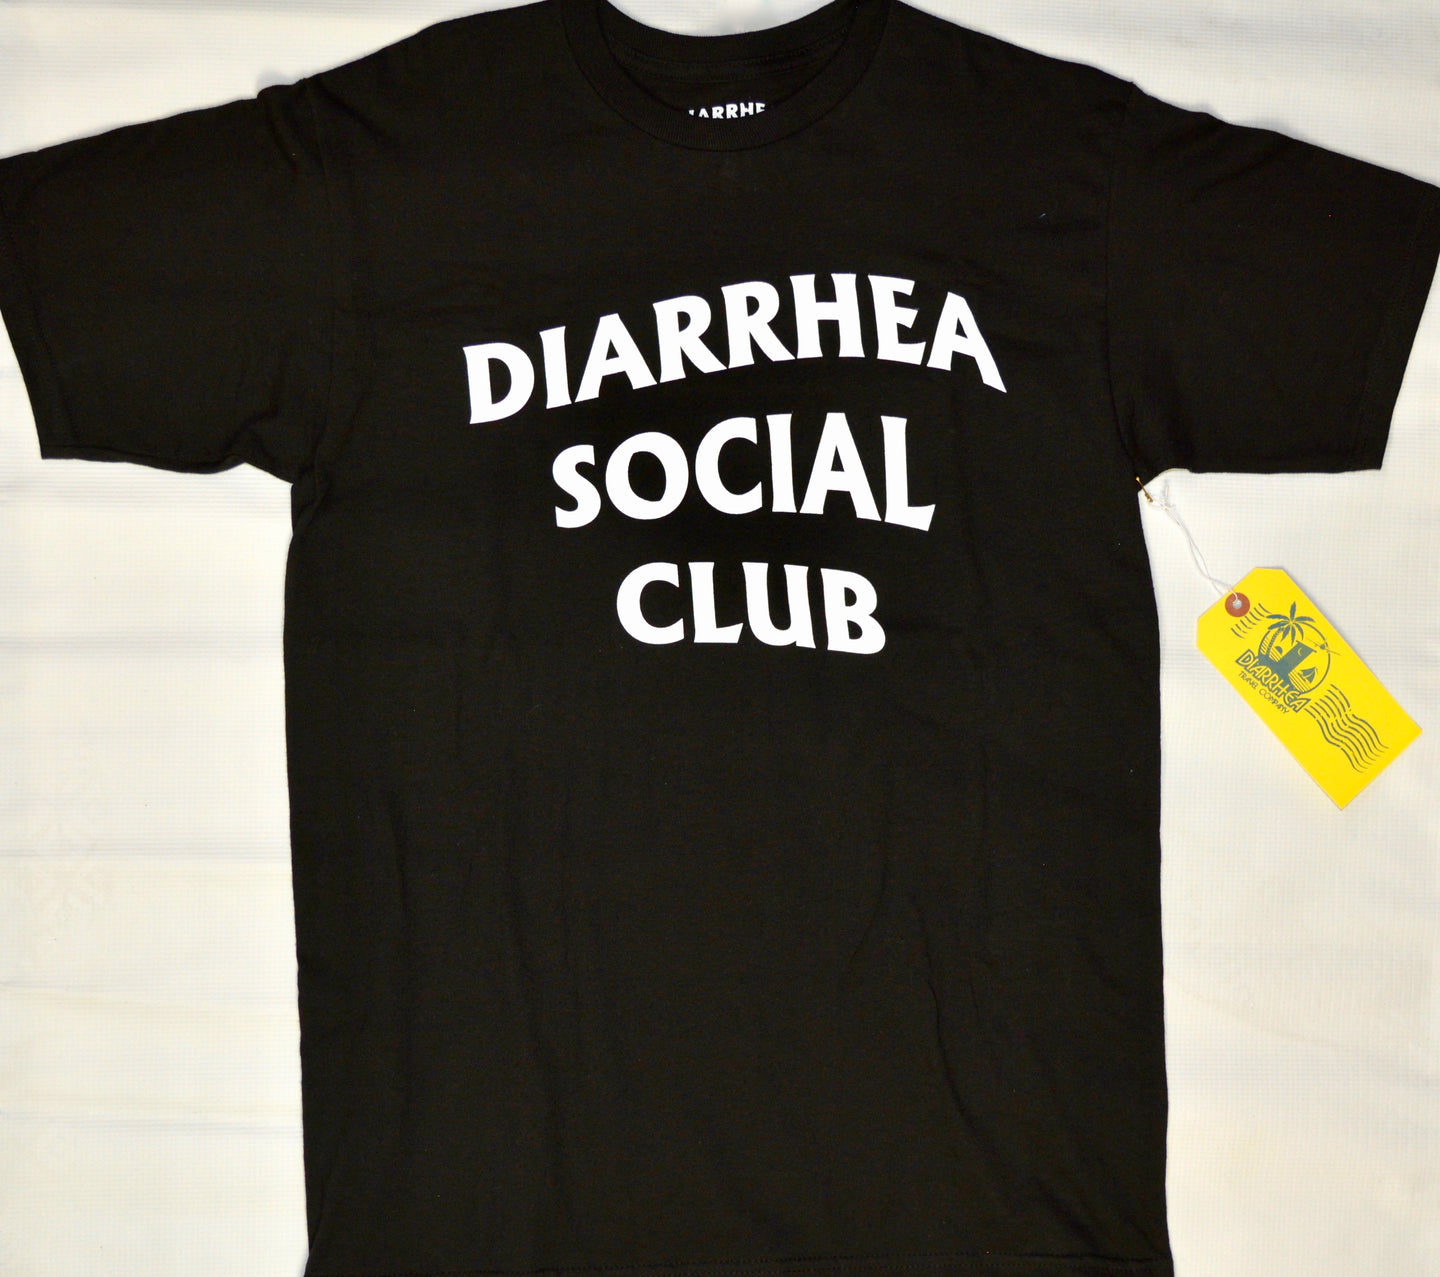 DIARRHEA SOCIAL CLUB TEE